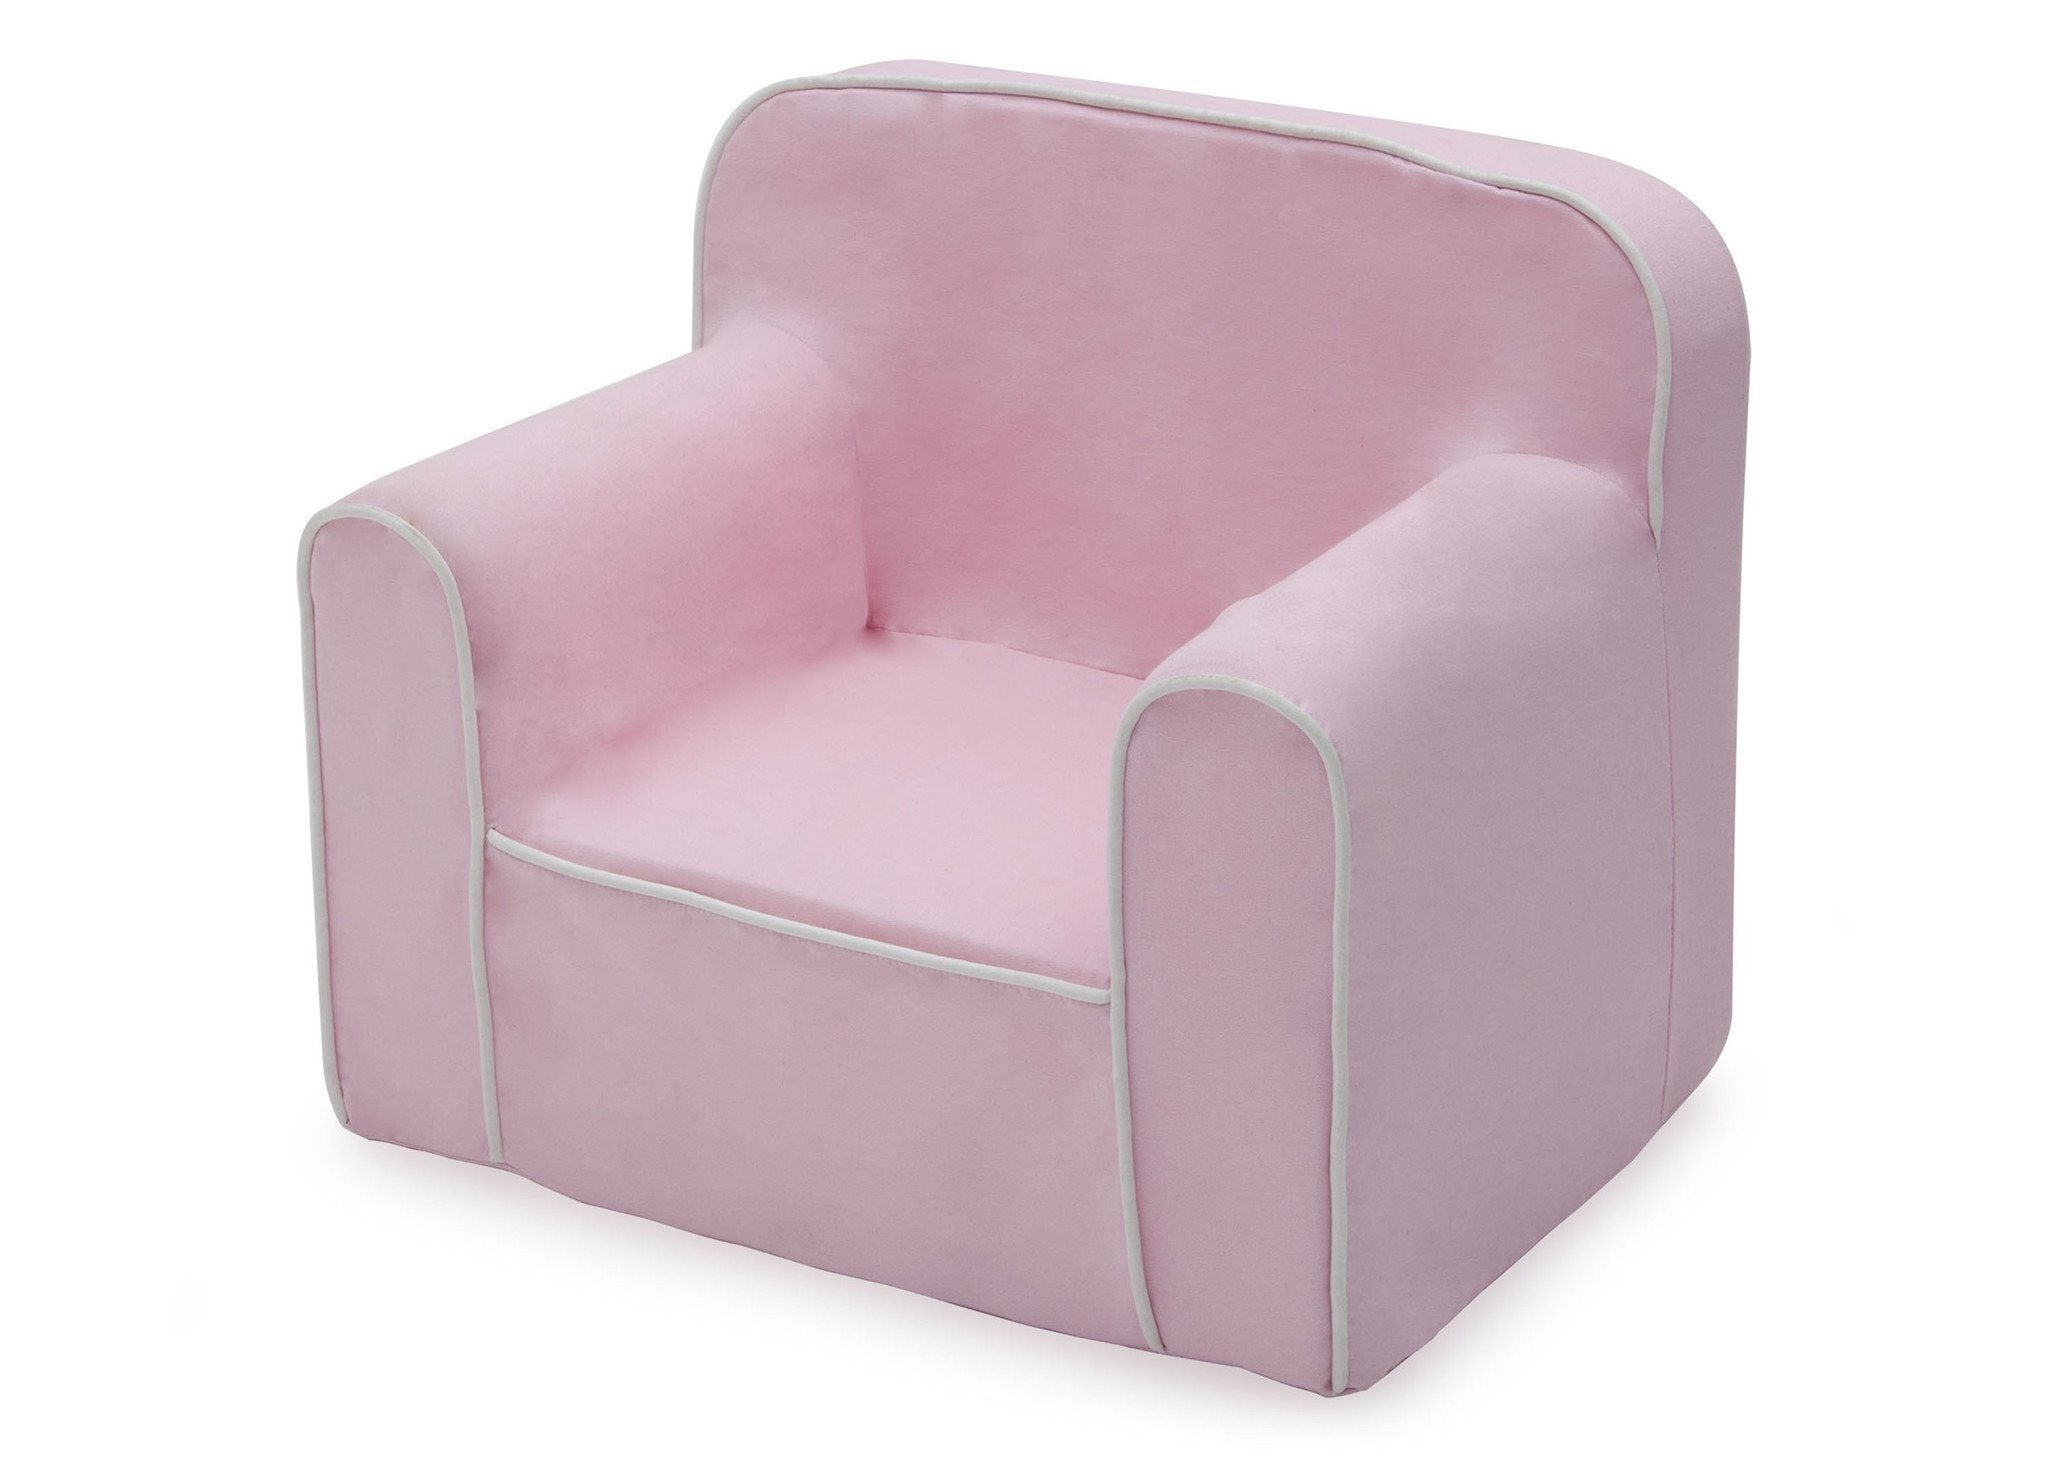 ... Delta Children Pink And White Foam Snuggle Chair Style 1, Left View A2a  ...